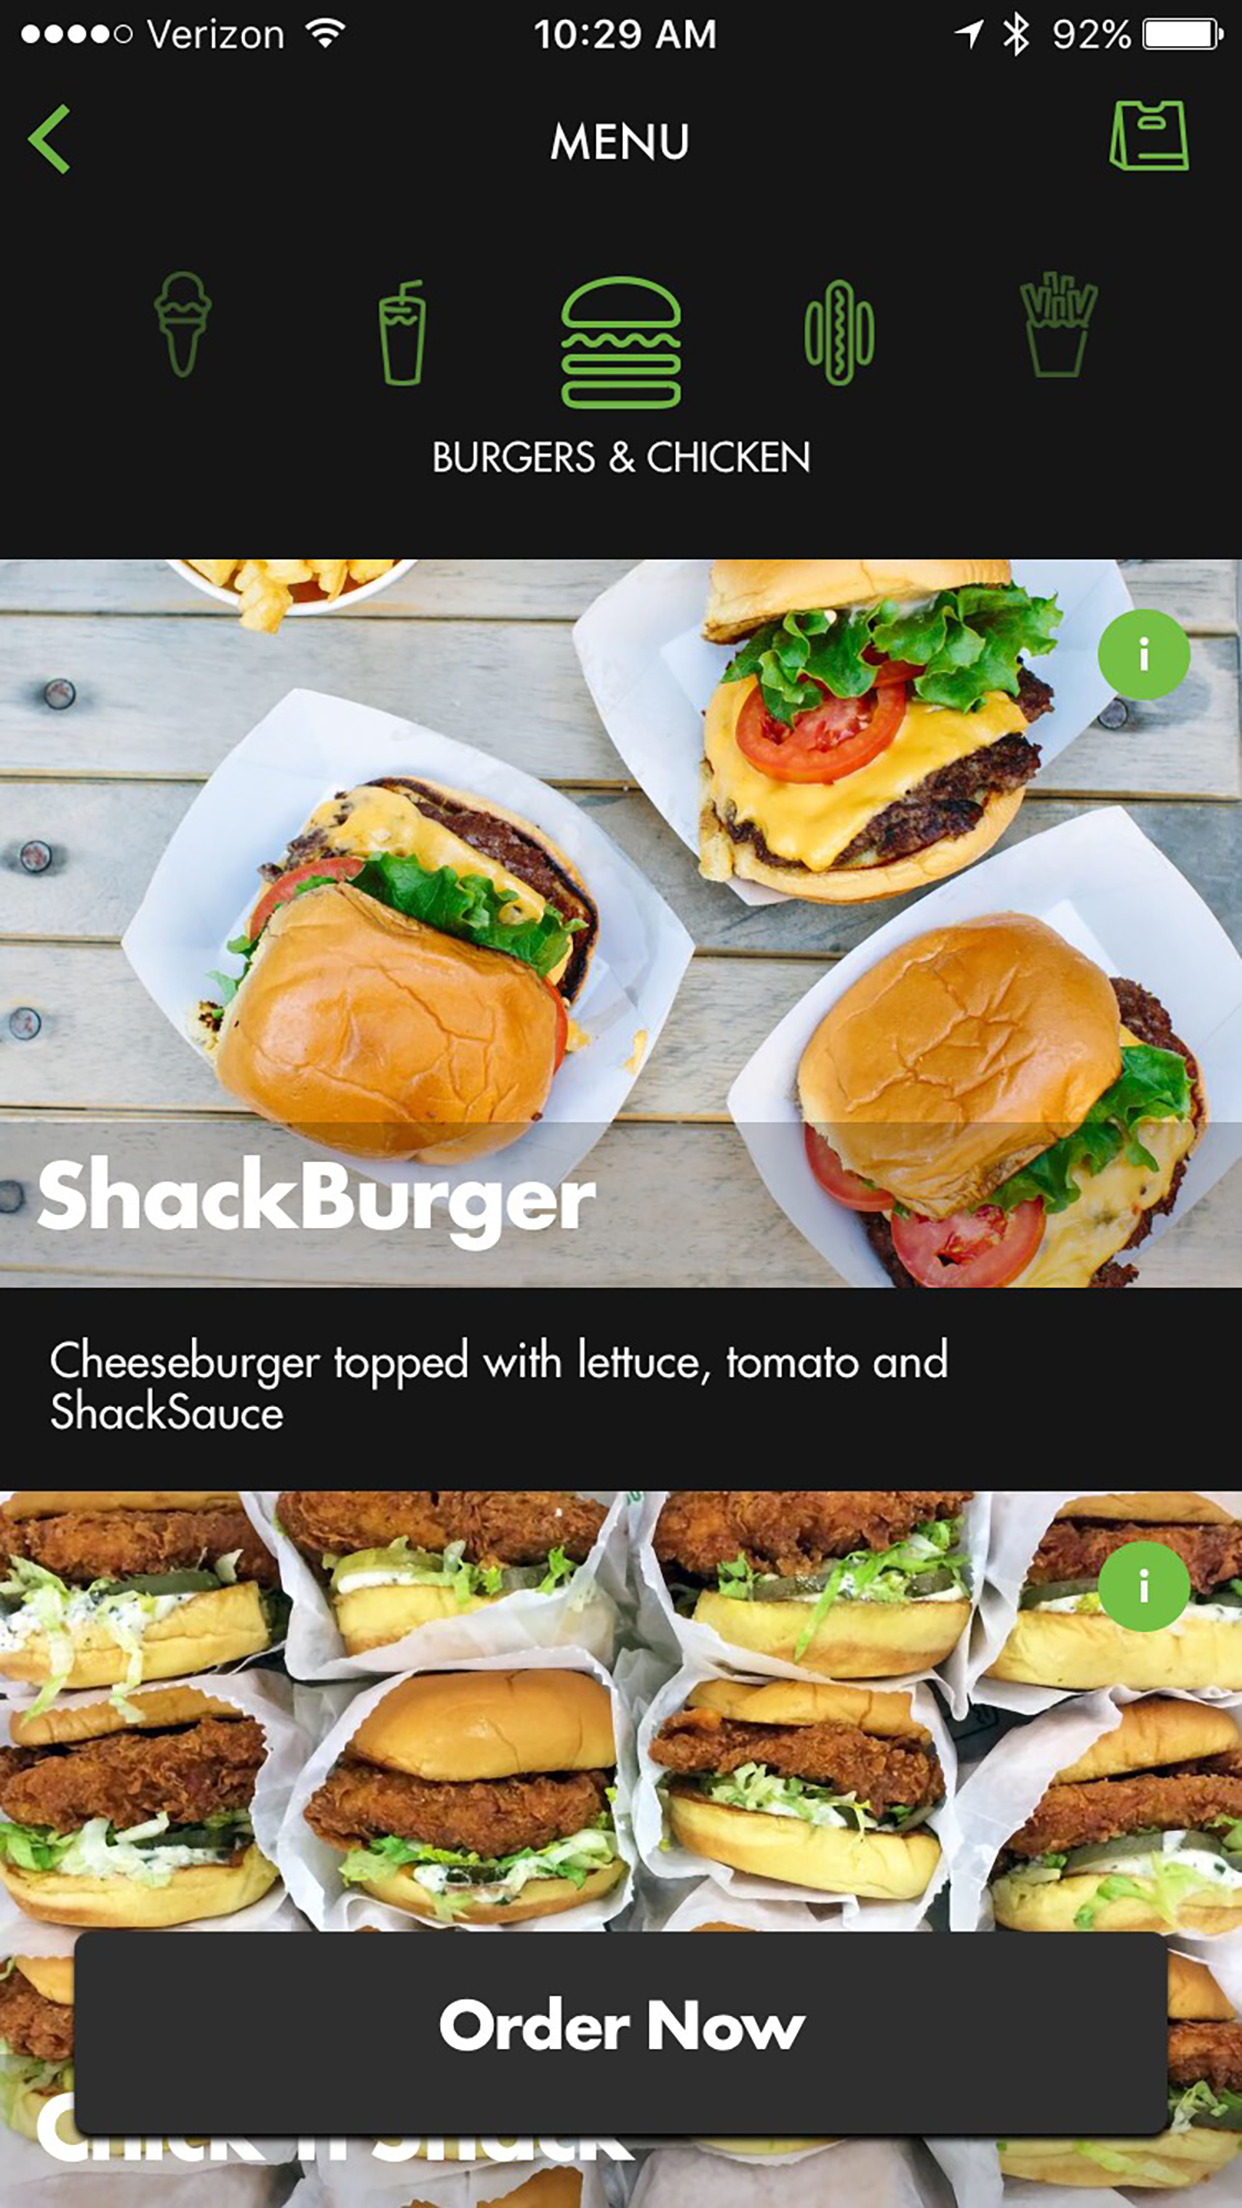 Shake Shack launches new mobile ordering app.